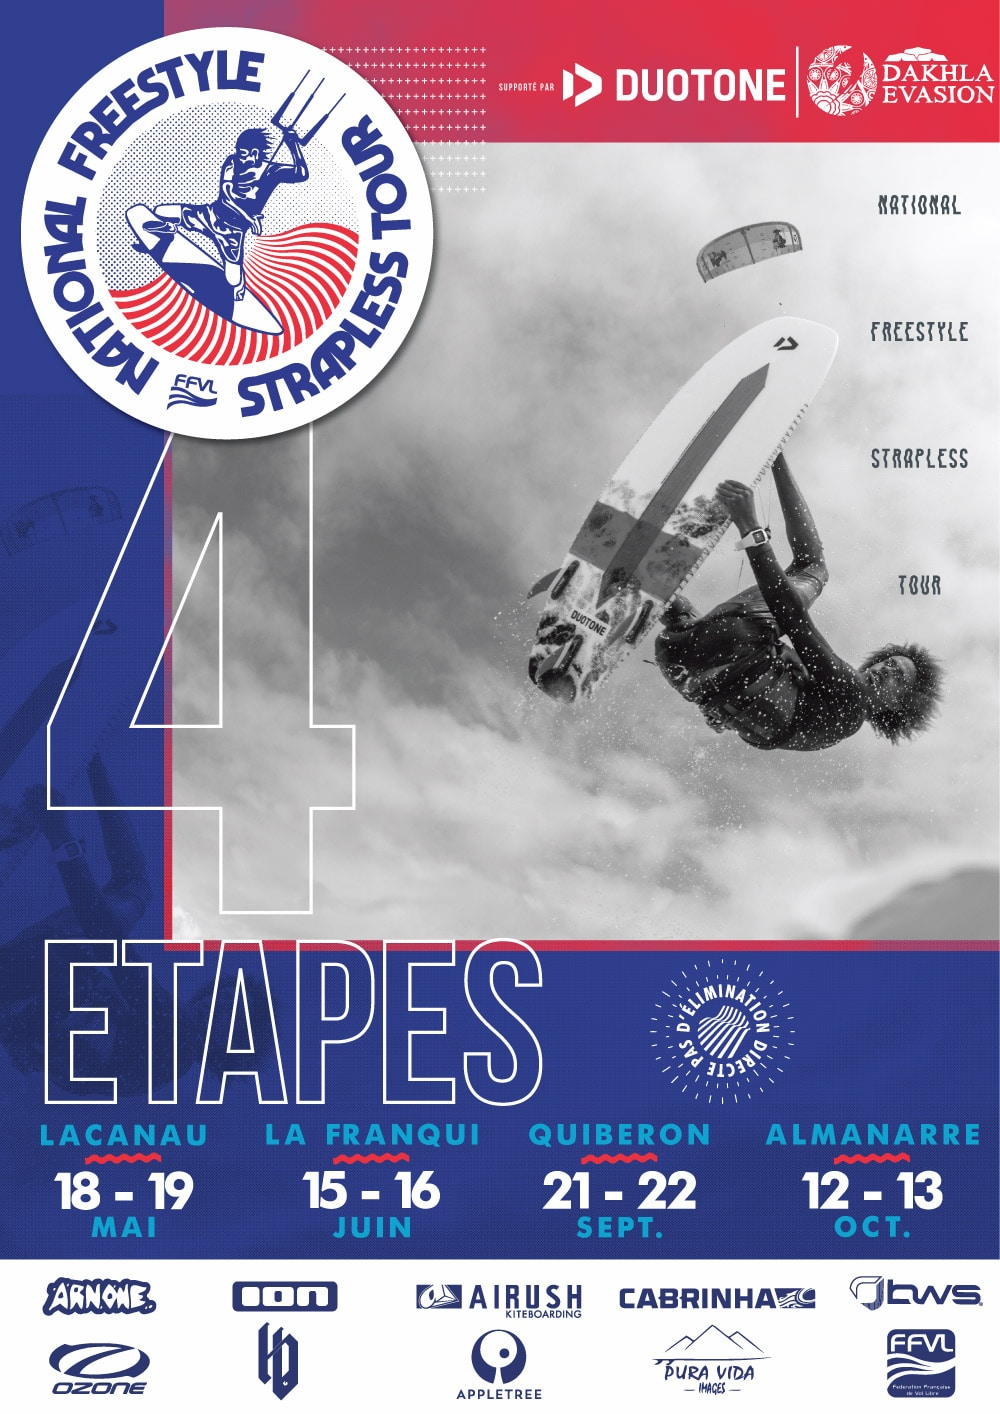 national freestyle strapless tour 2019